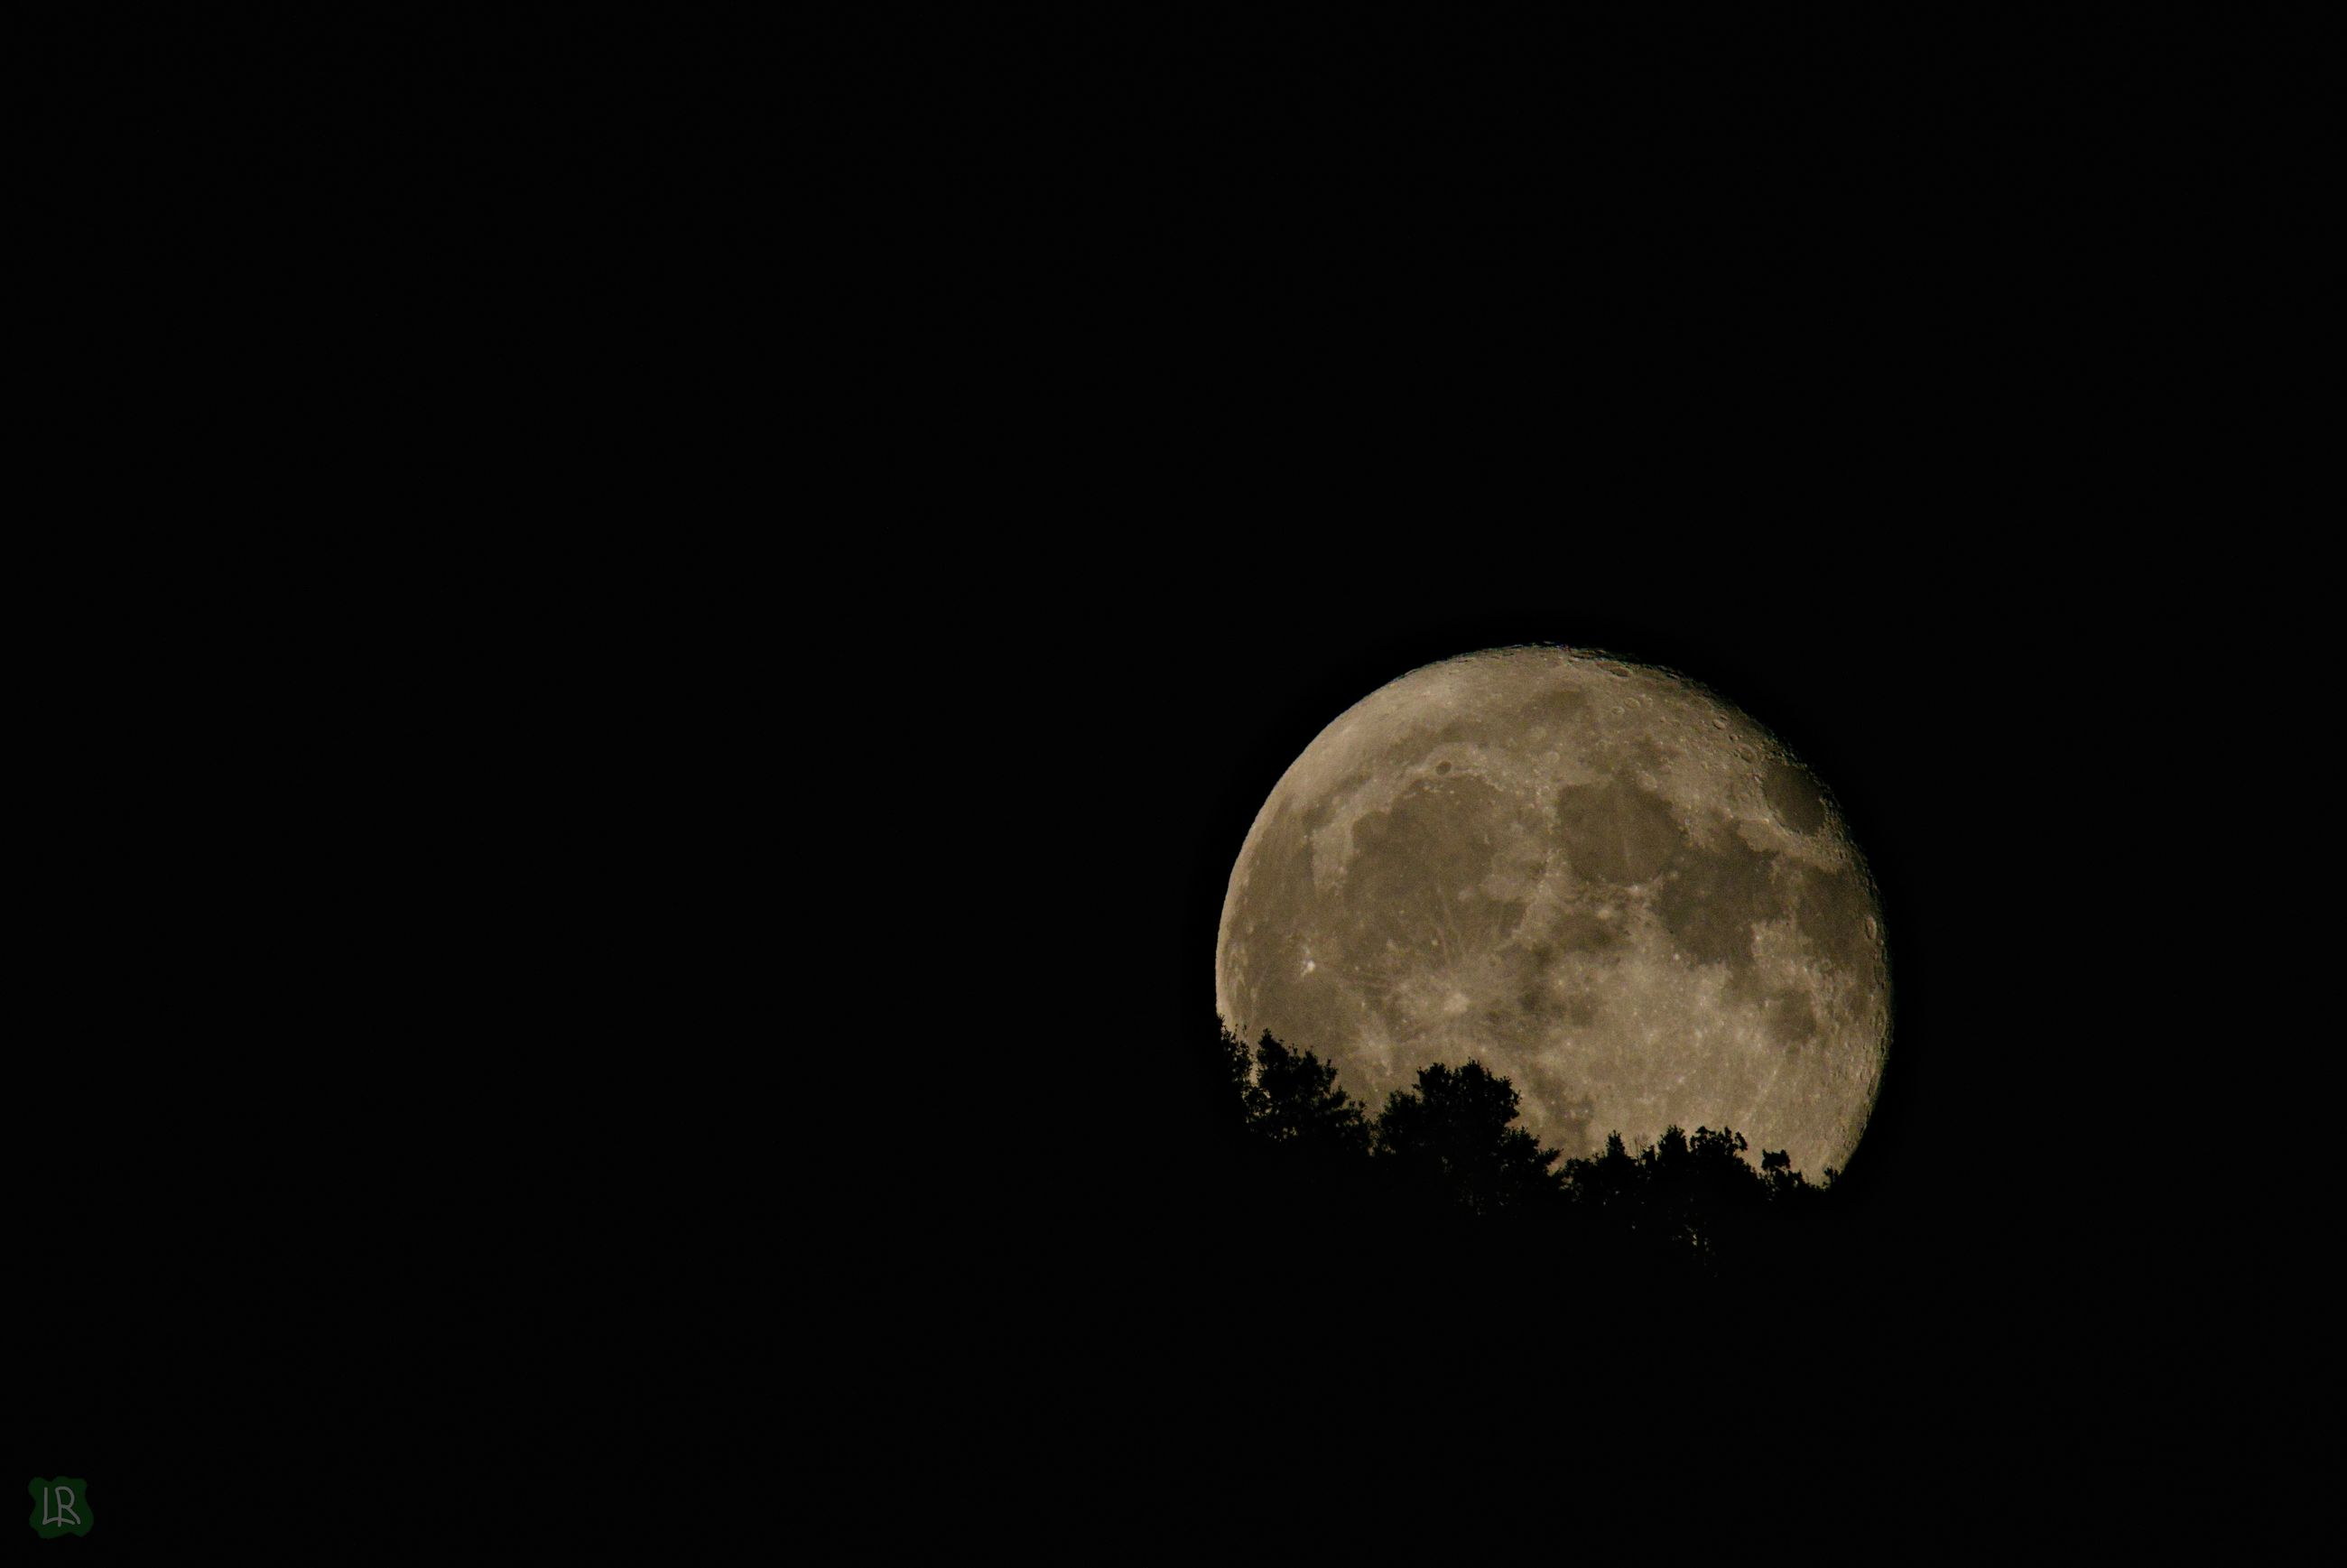 moon, sky, space, night, astronomy, copy space, planetary moon, scenics - nature, beauty in nature, tranquility, tranquil scene, no people, low angle view, circle, moon surface, nature, clear sky, full moon, geometric shape, dark, outdoors, moonlight, space and astronomy